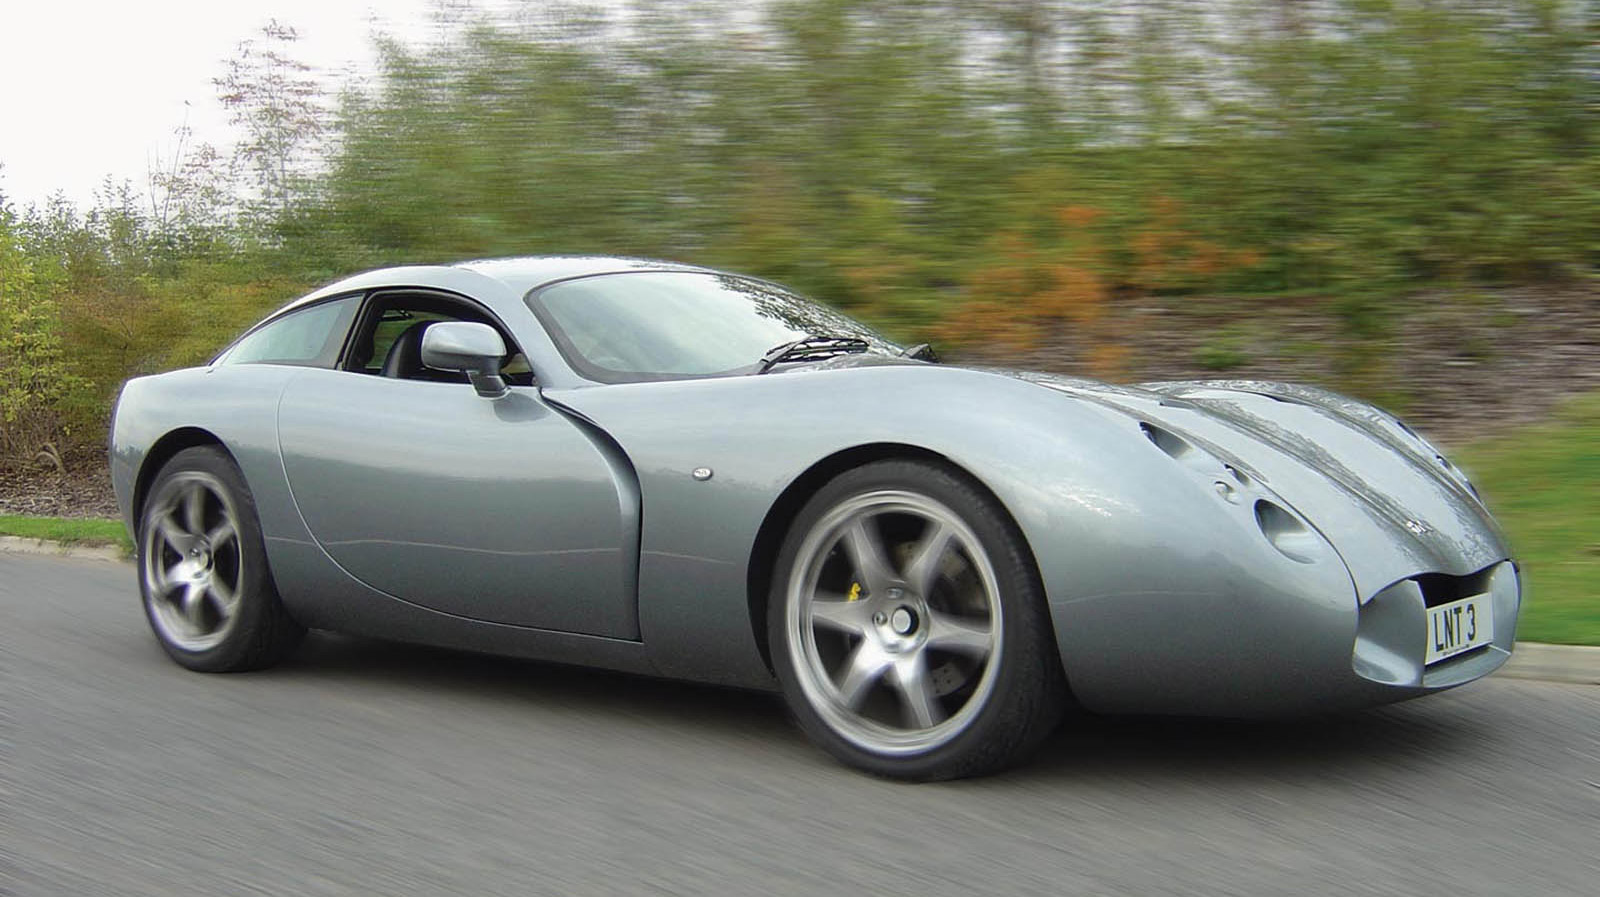 tvr boss gives up on building cars focuses on wind turbines. Black Bedroom Furniture Sets. Home Design Ideas